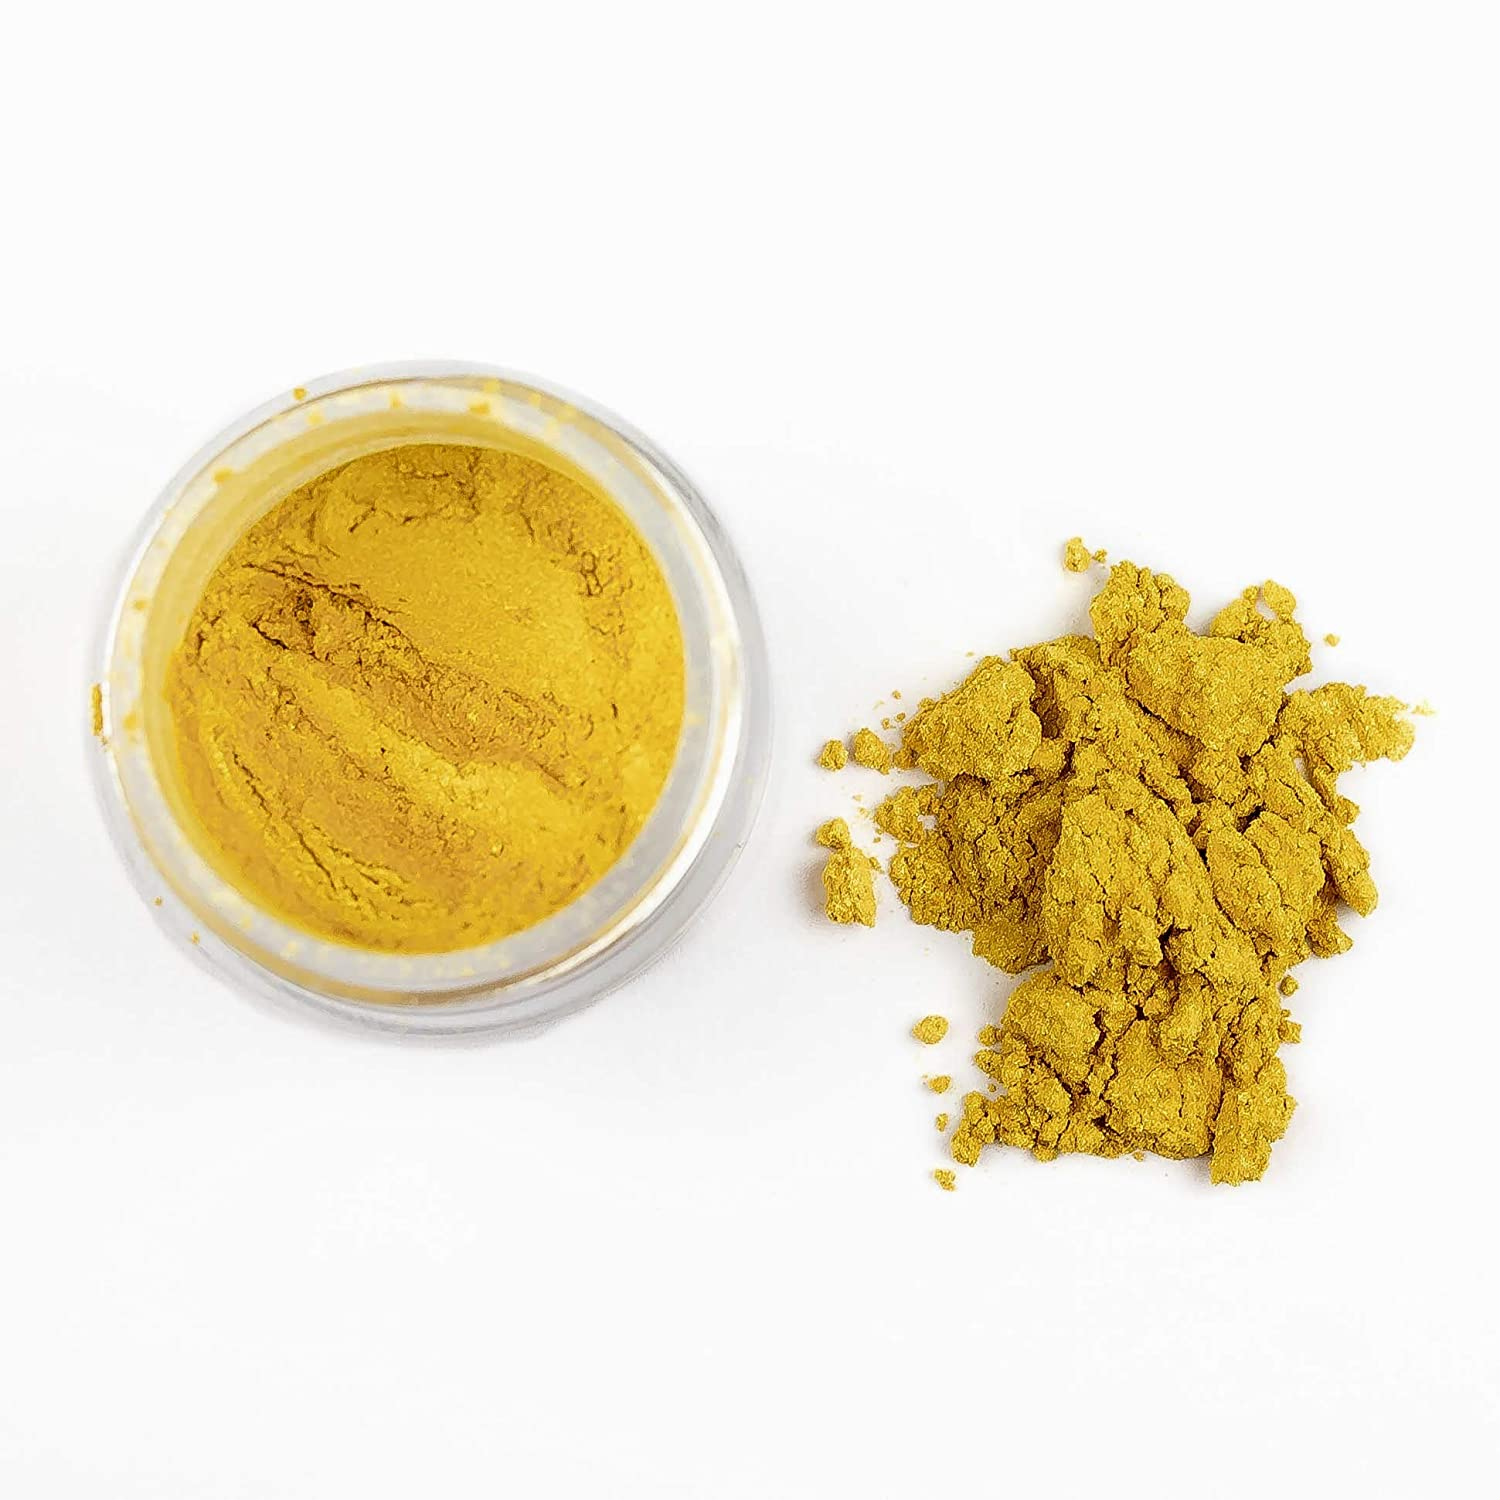 Super Gold Edible Luster Dust | Edible Powder & Dust | Food Grade Luster Dust for Decorating, Fondant, Baking | Polvo Matizador | Cakes, Vegan Paint, & Dust | Sunflower Sugar Art